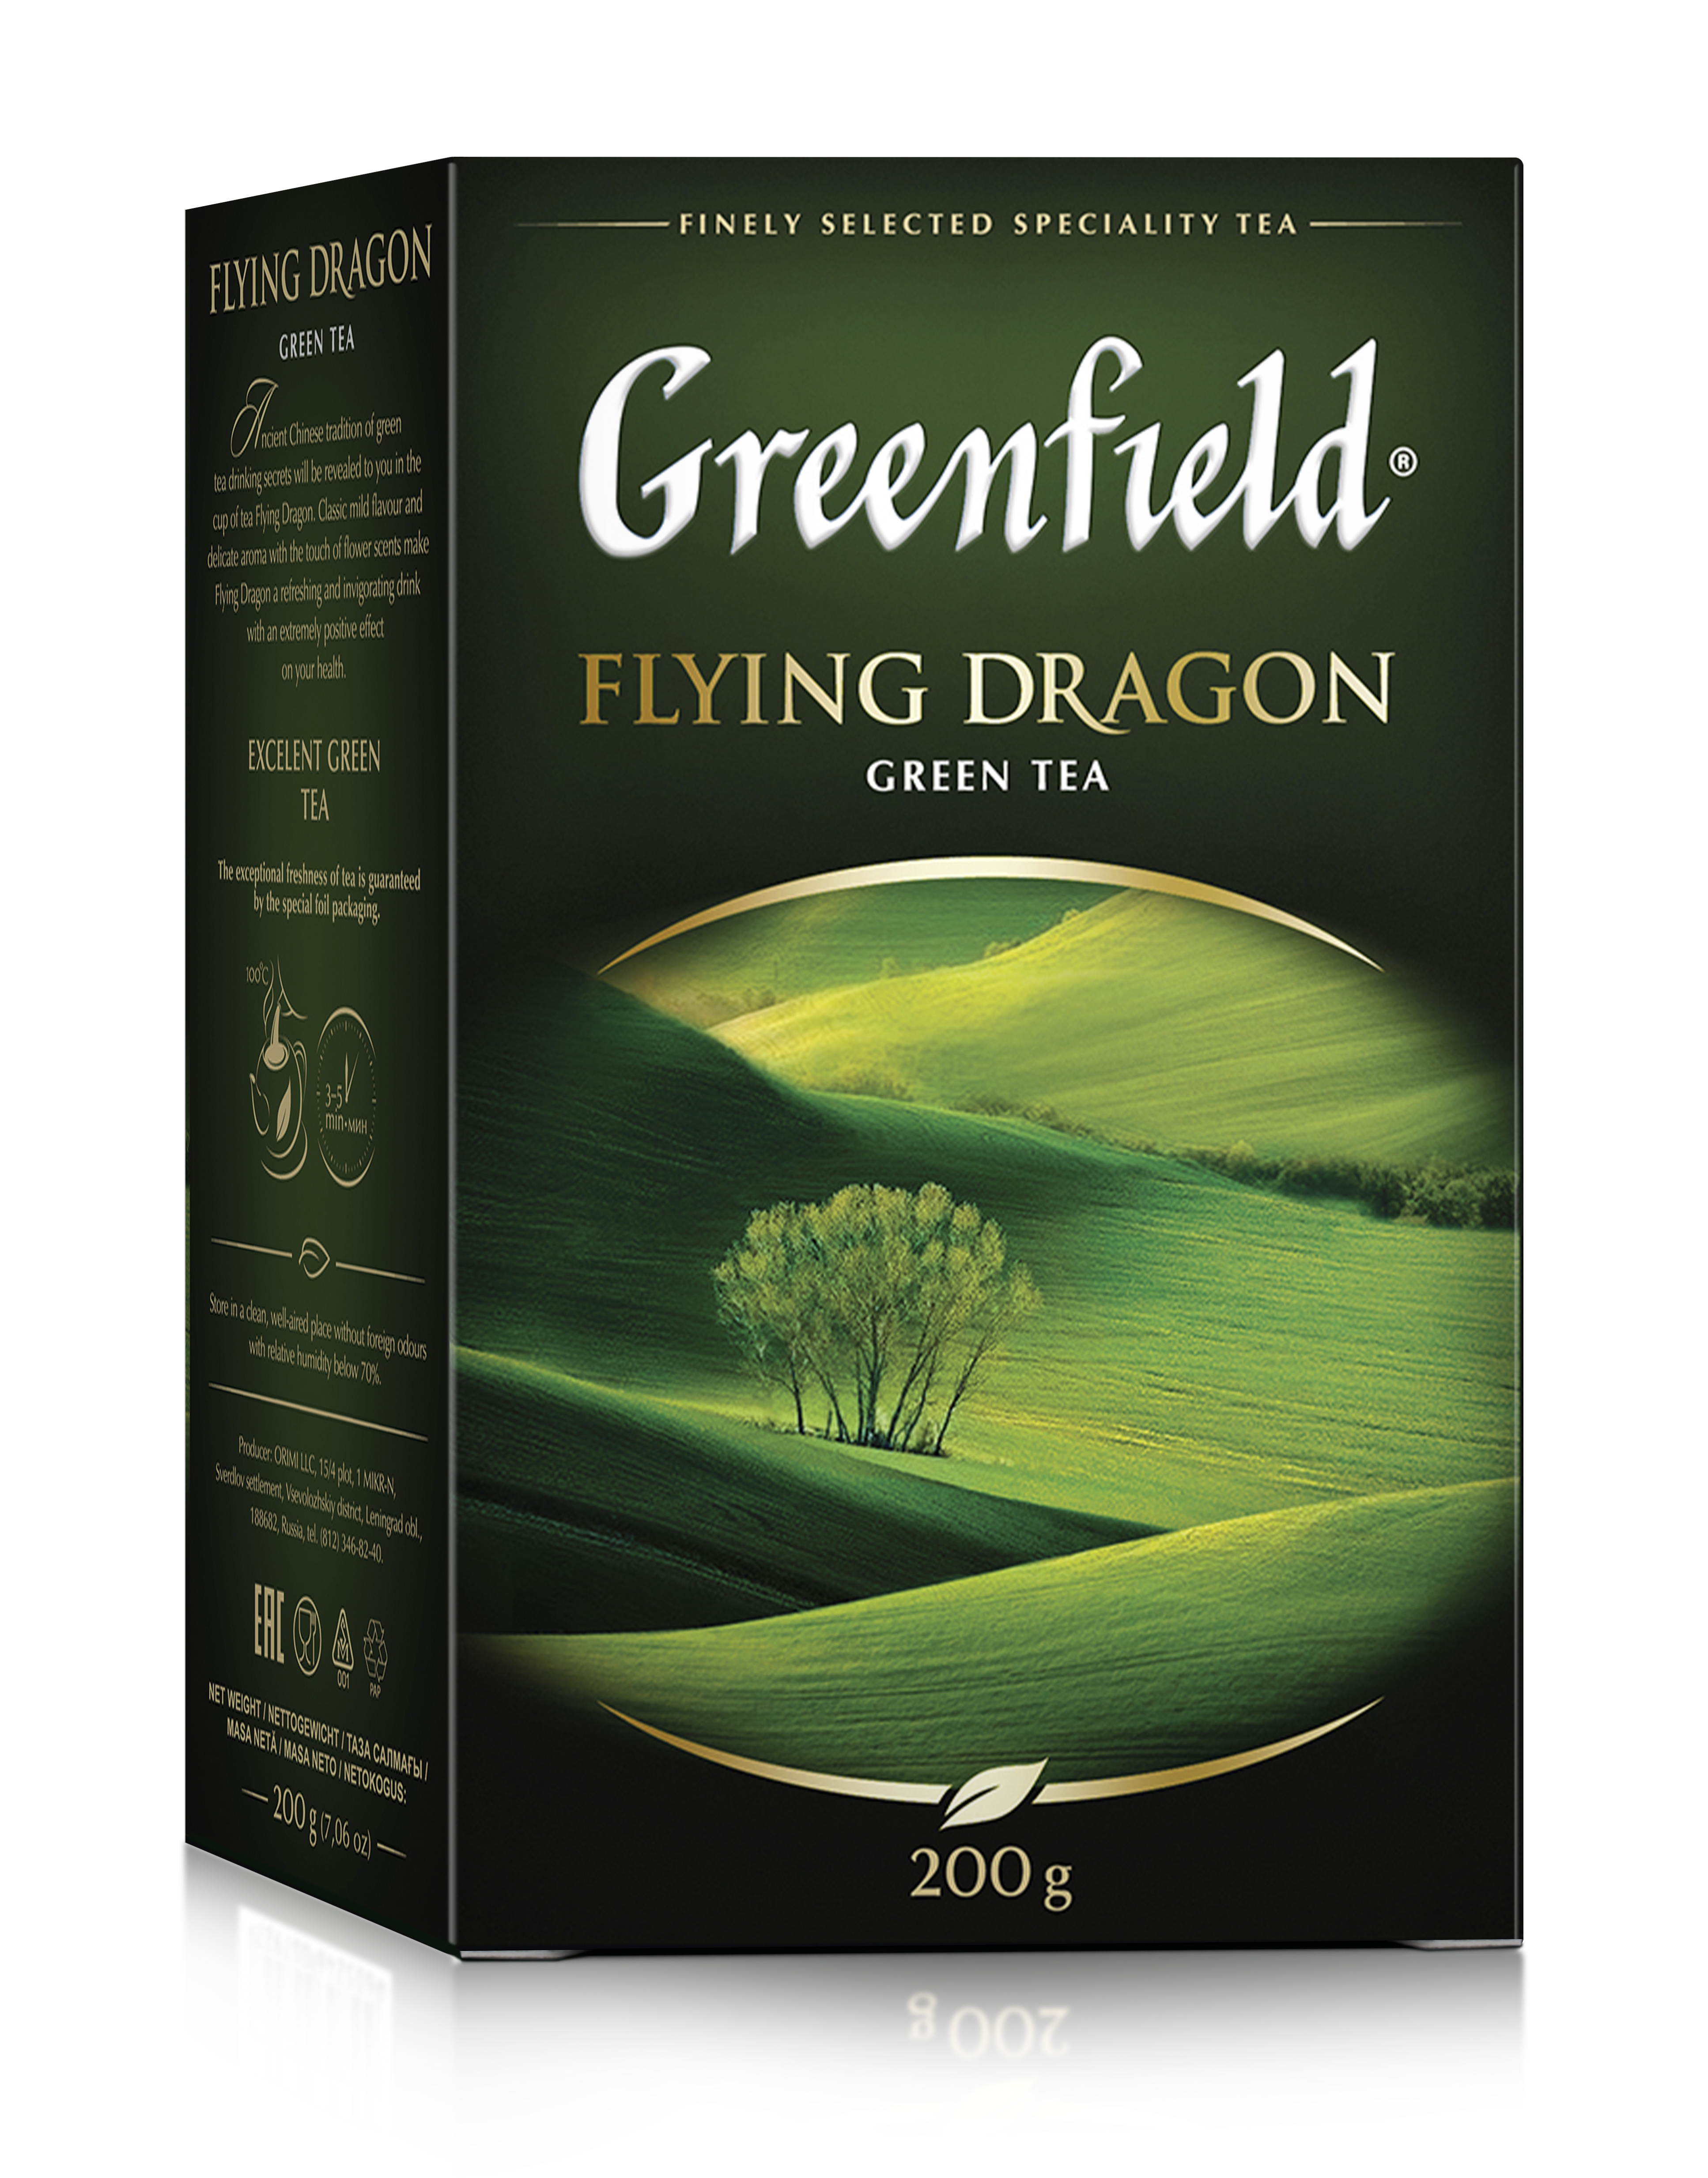 Чай Greenfield Flying Dragon зеленый, 200г.